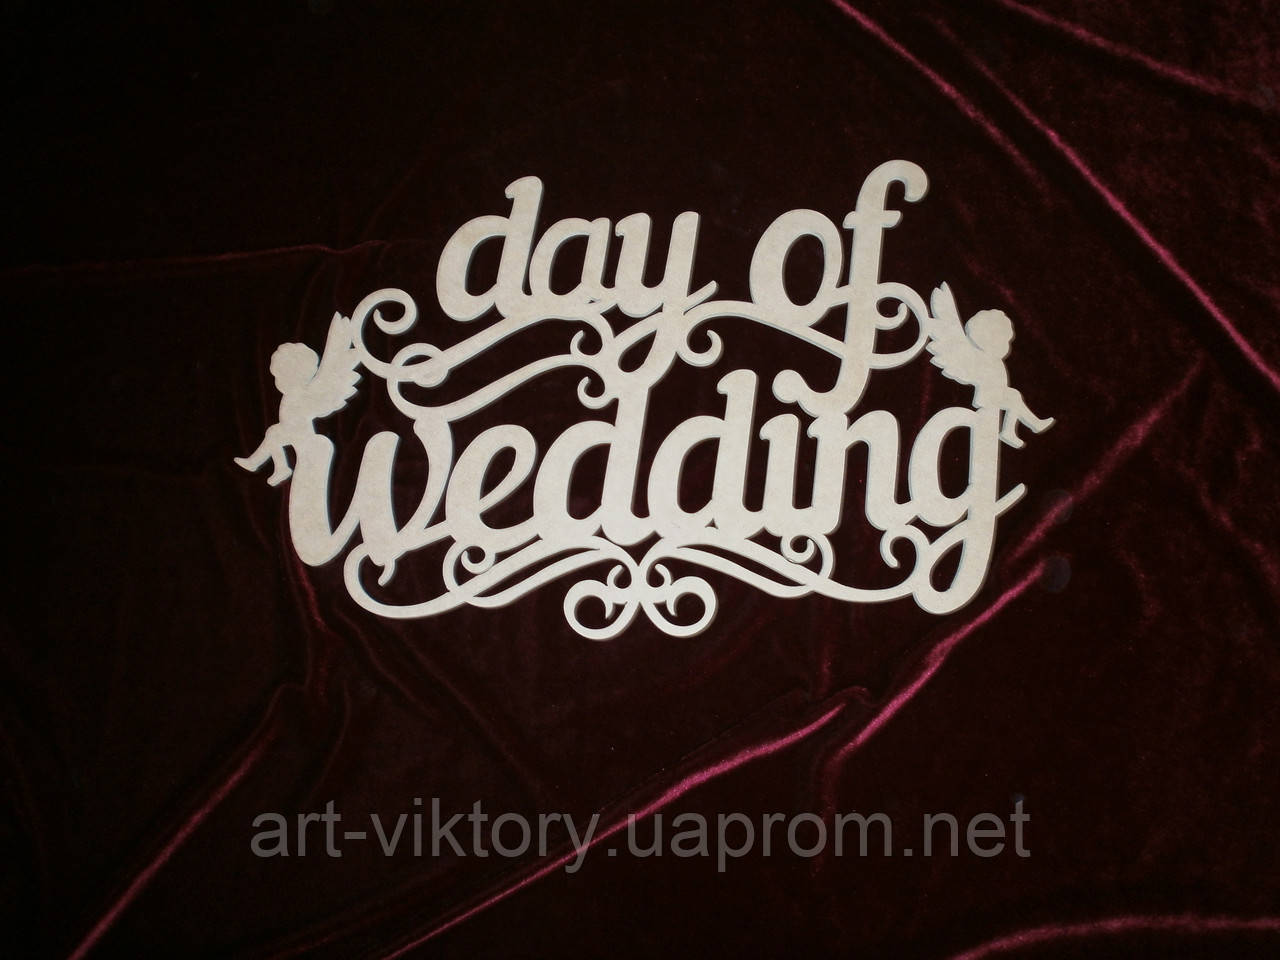 Day of wedding (56 х 33 см), декор